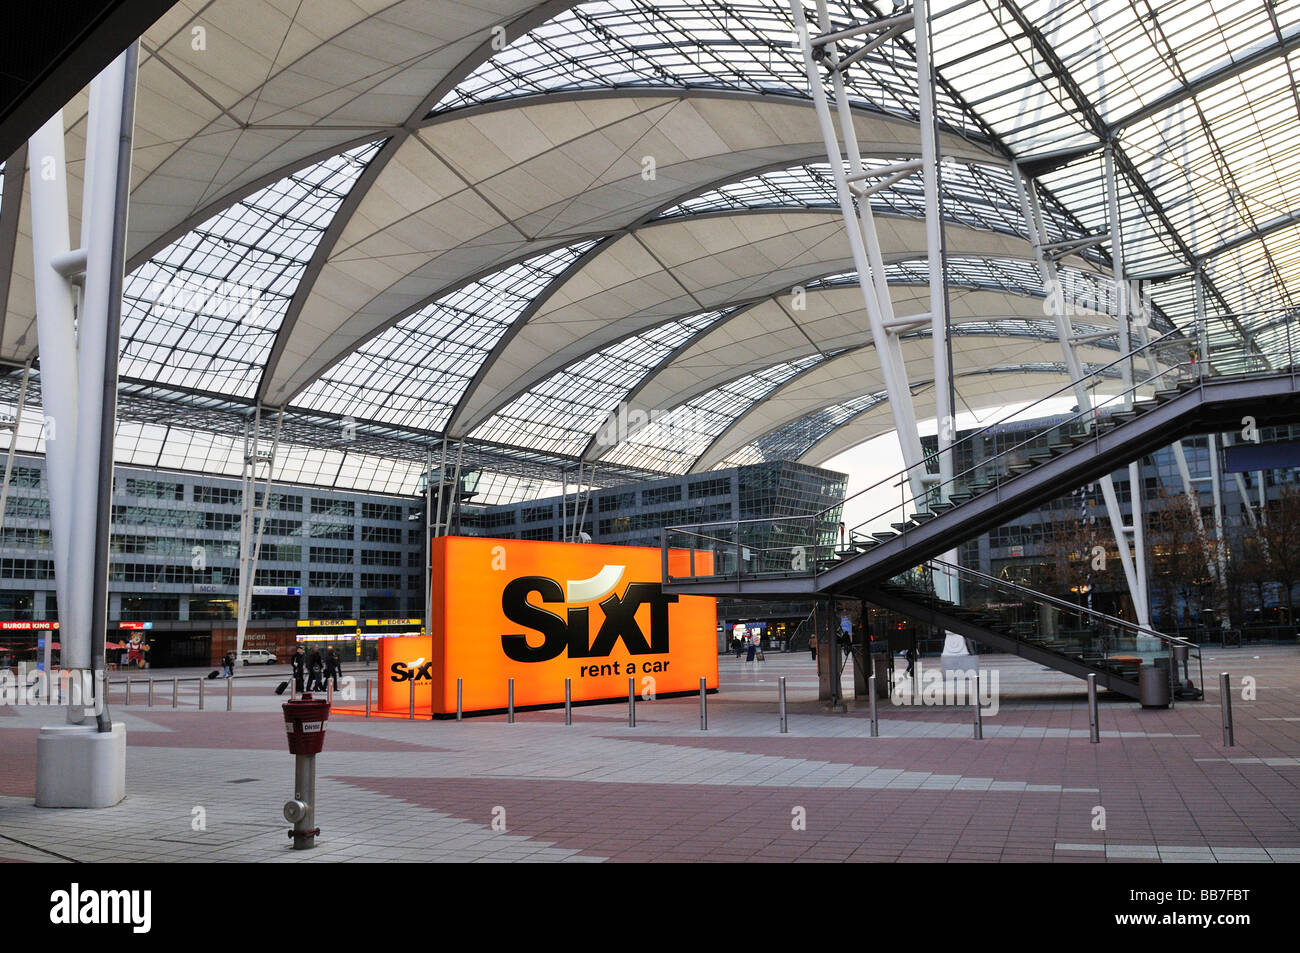 Ad for sixt car rental service terminal 2 muc ii airport munich bavaria germany europe